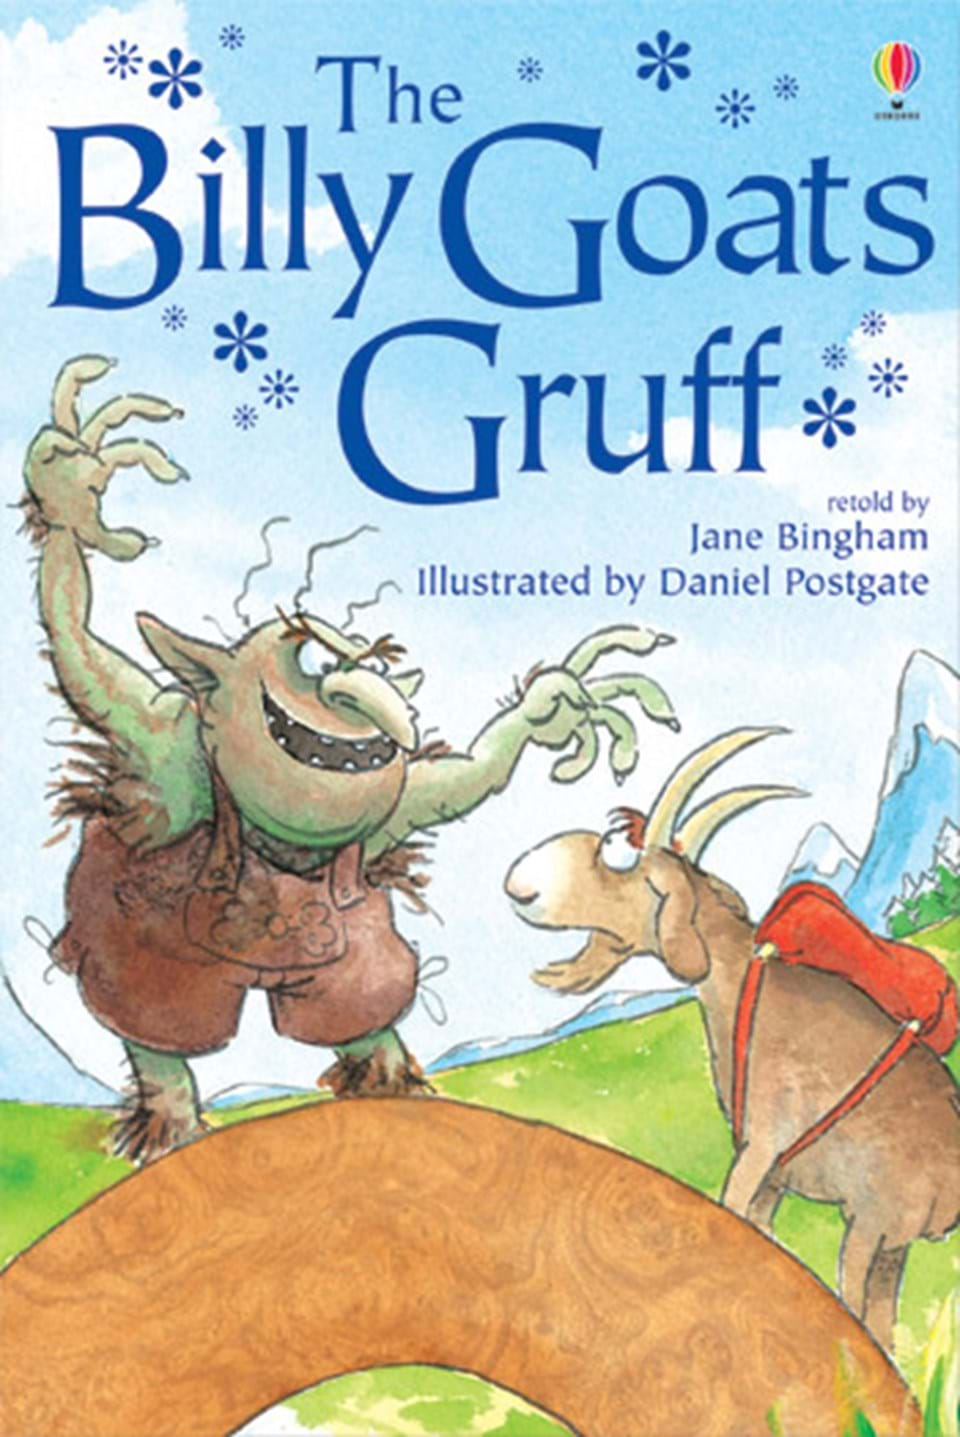 Worksheet Billy Goats Gruff Story billy goat gruff story laptuoso the goats at usborne books home